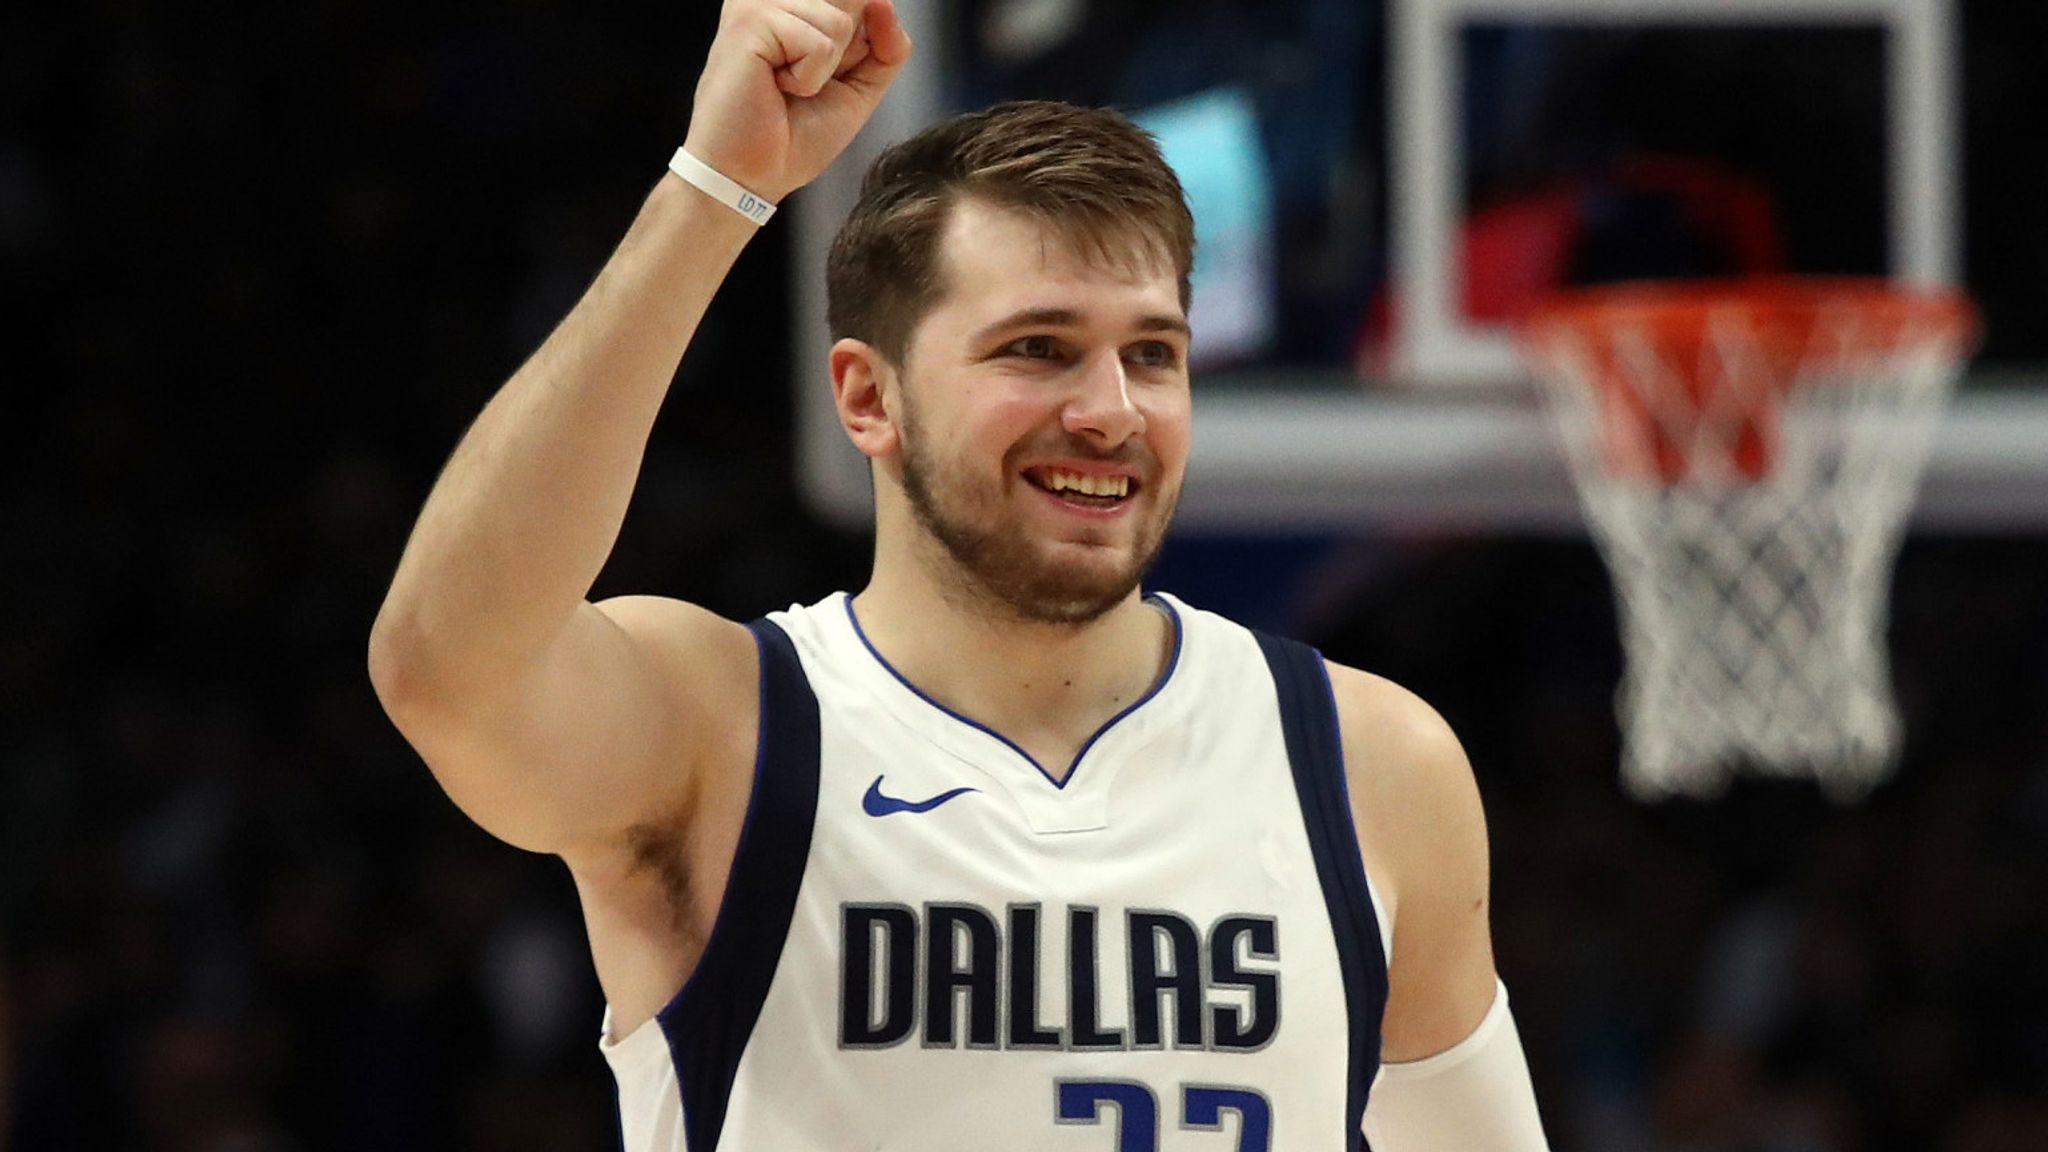 Luka Doncic named All-Star starter as Dallas Mavericks star makes more history